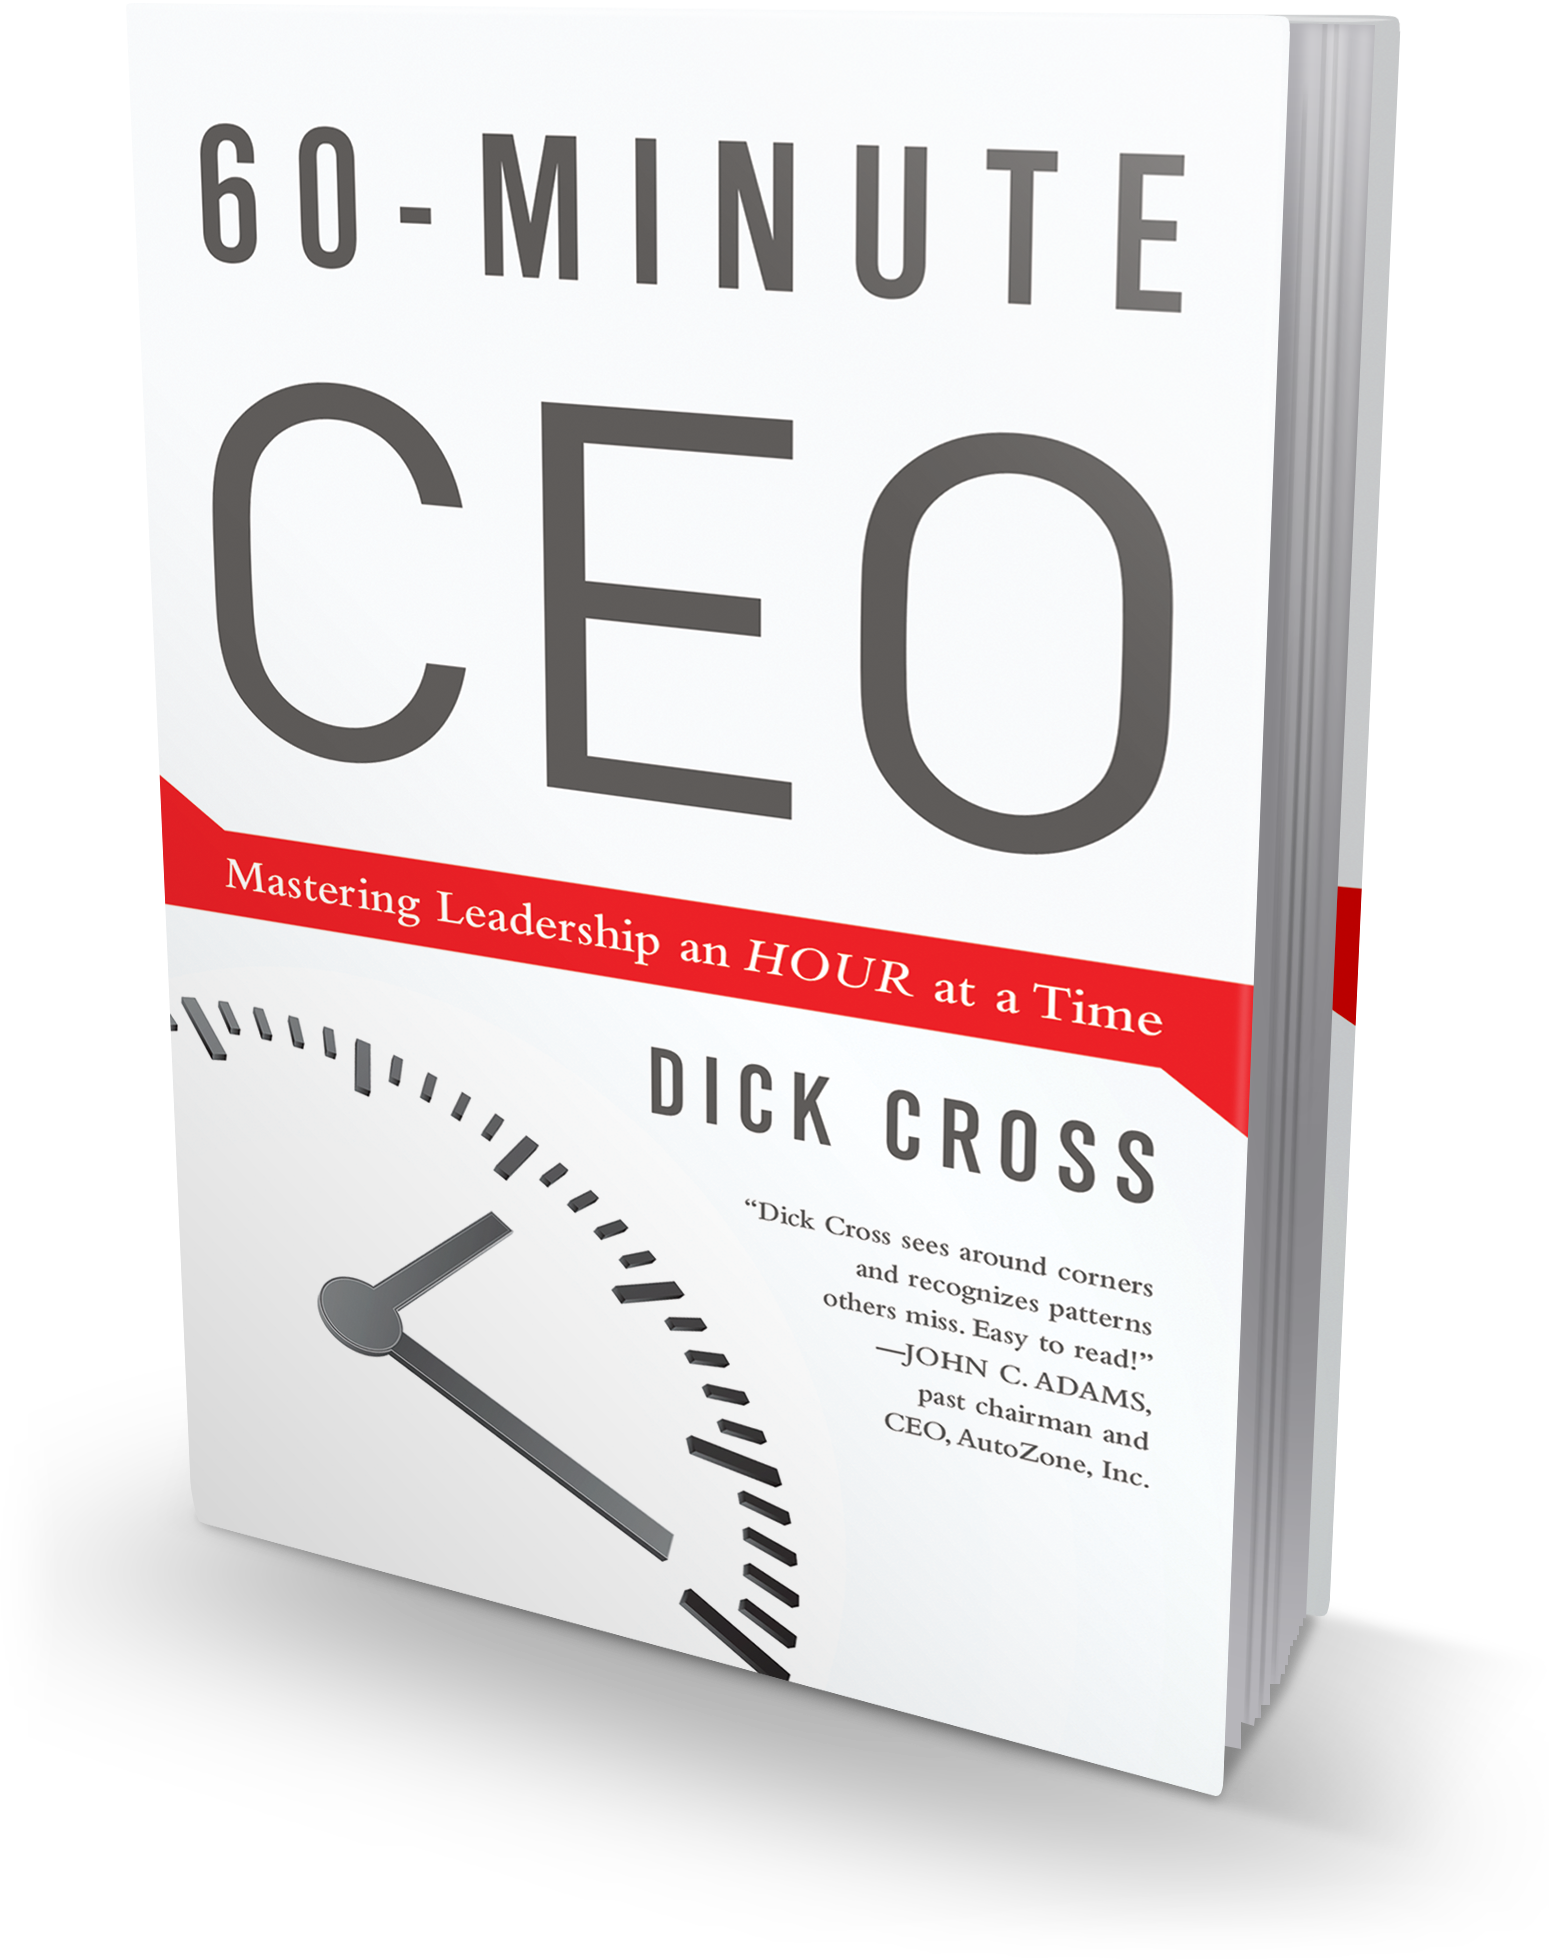 60-Minute CEO book cover